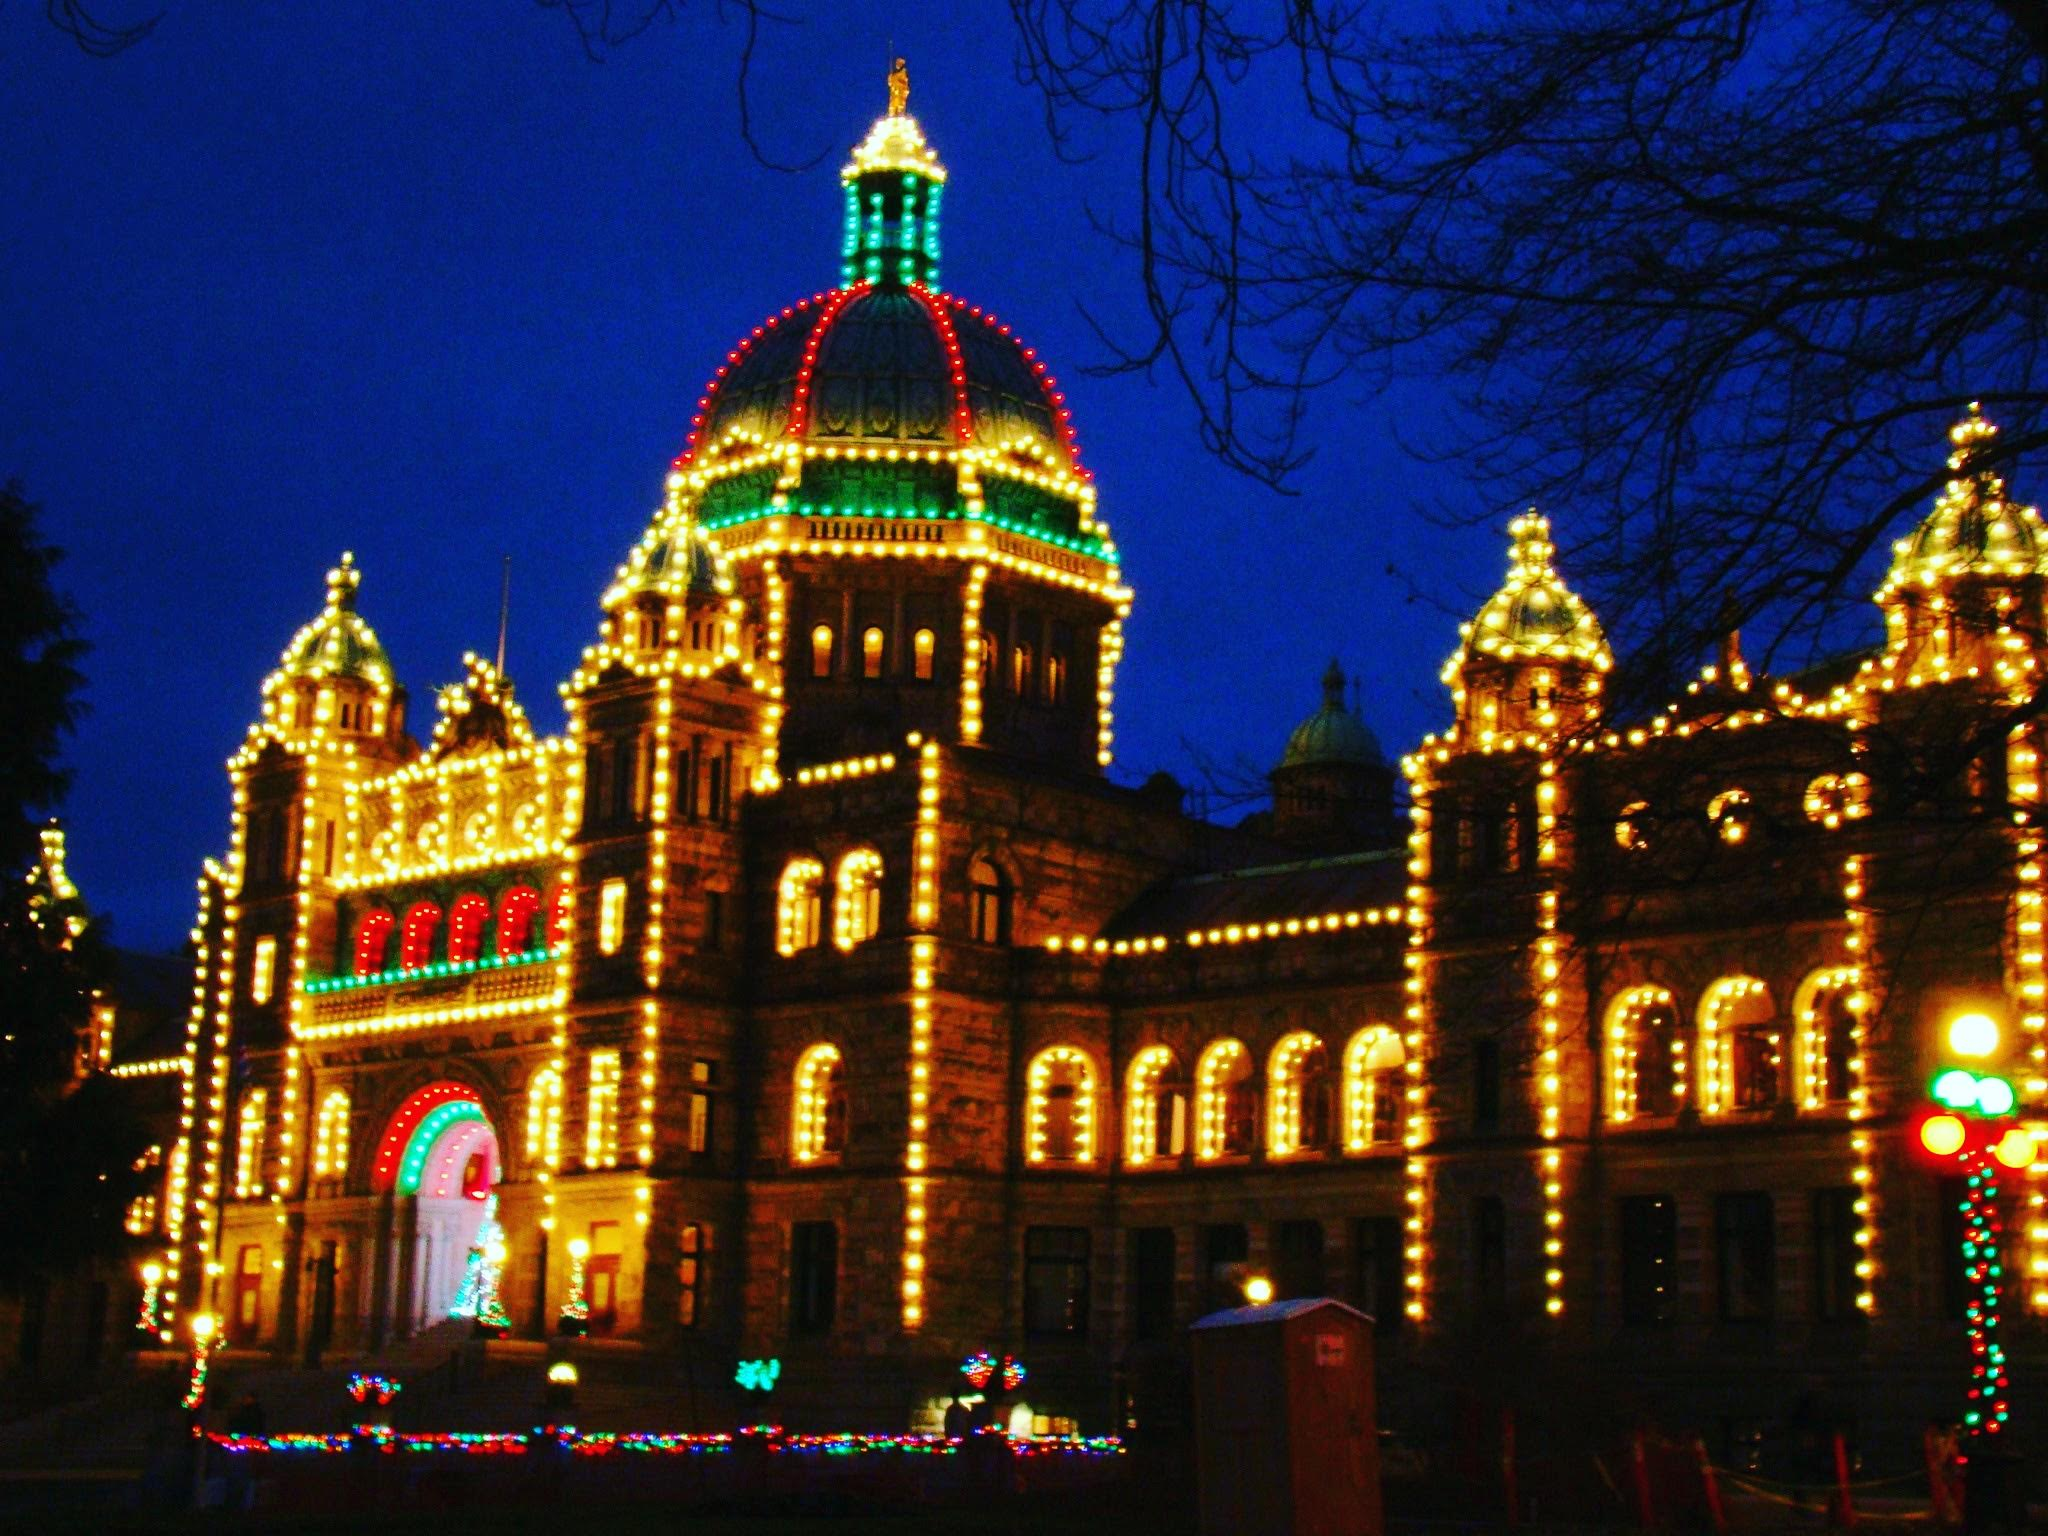 British Columbia Parliament Buildings beautifully lit up for Christmas